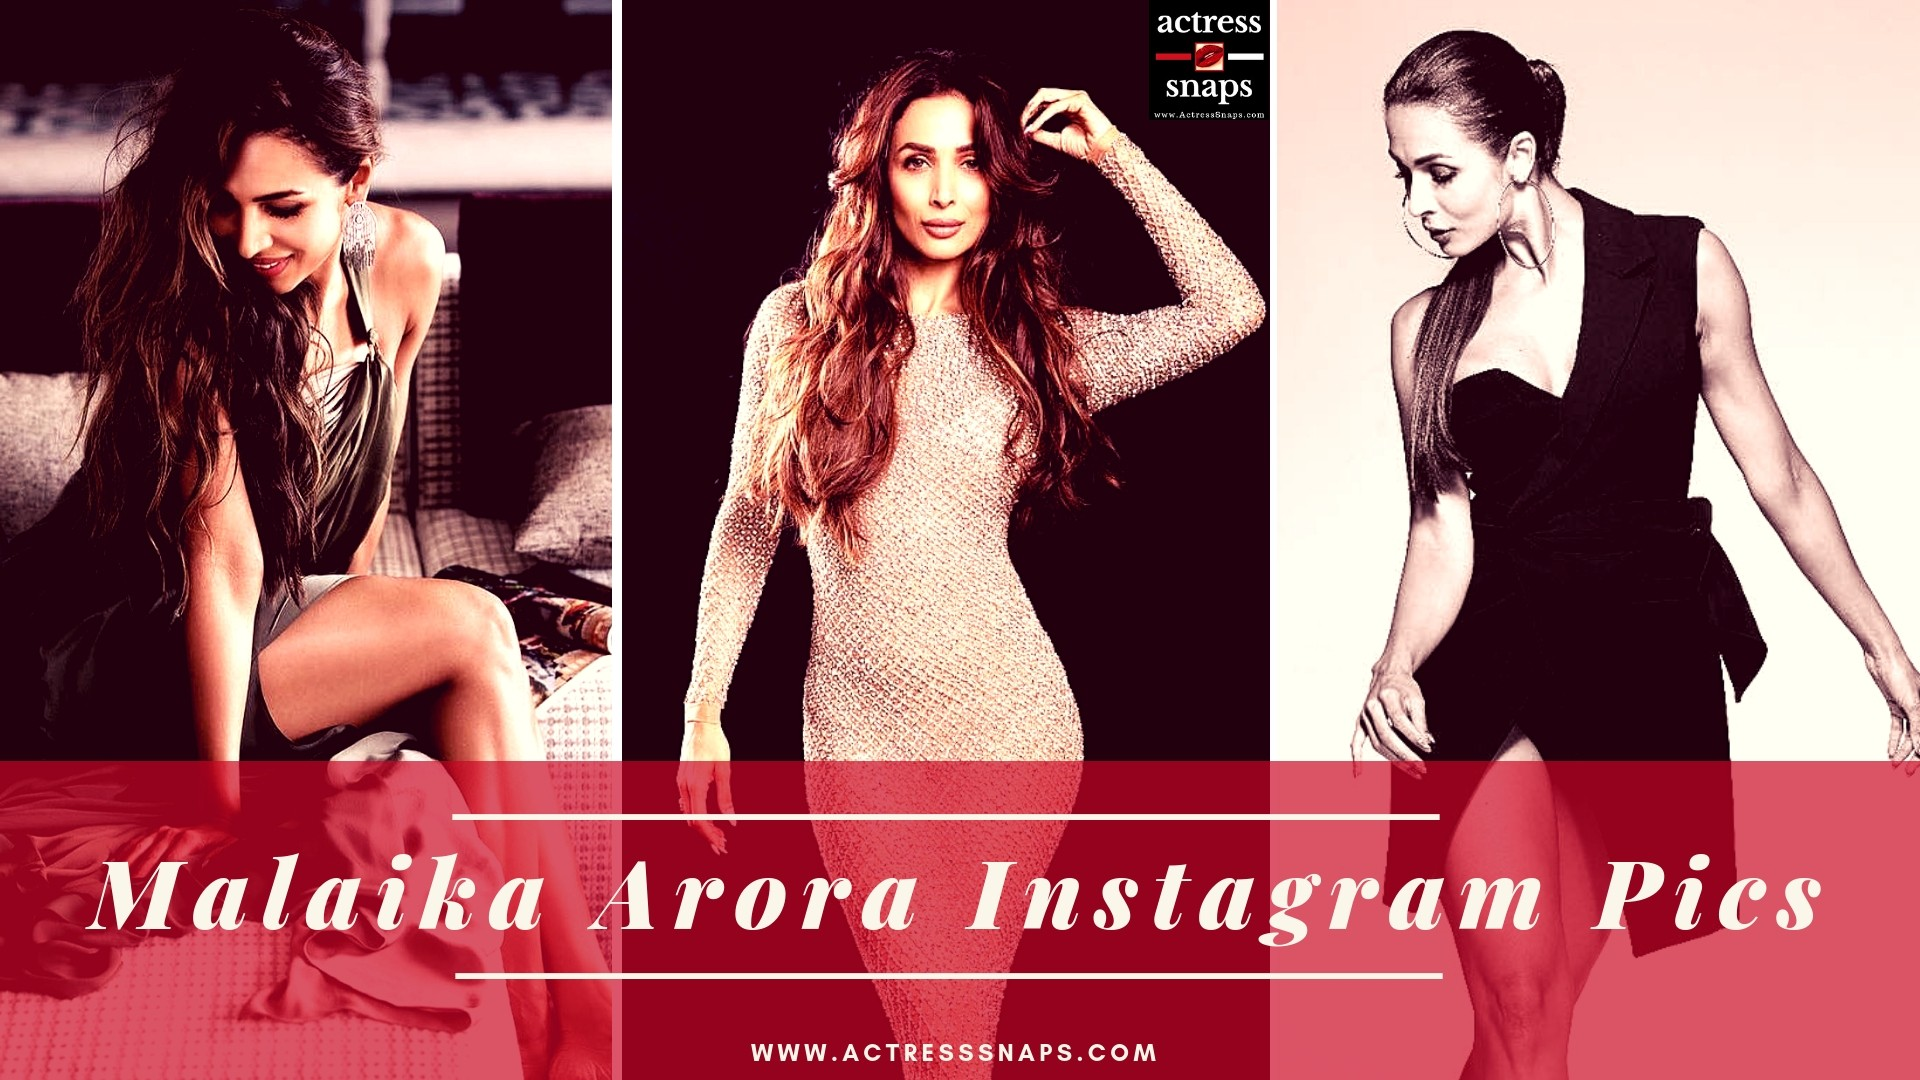 Top 15 Malaika Arora Photos - Sexy Actress Pictures | Hot Actress Pictures - ActressSnaps.com